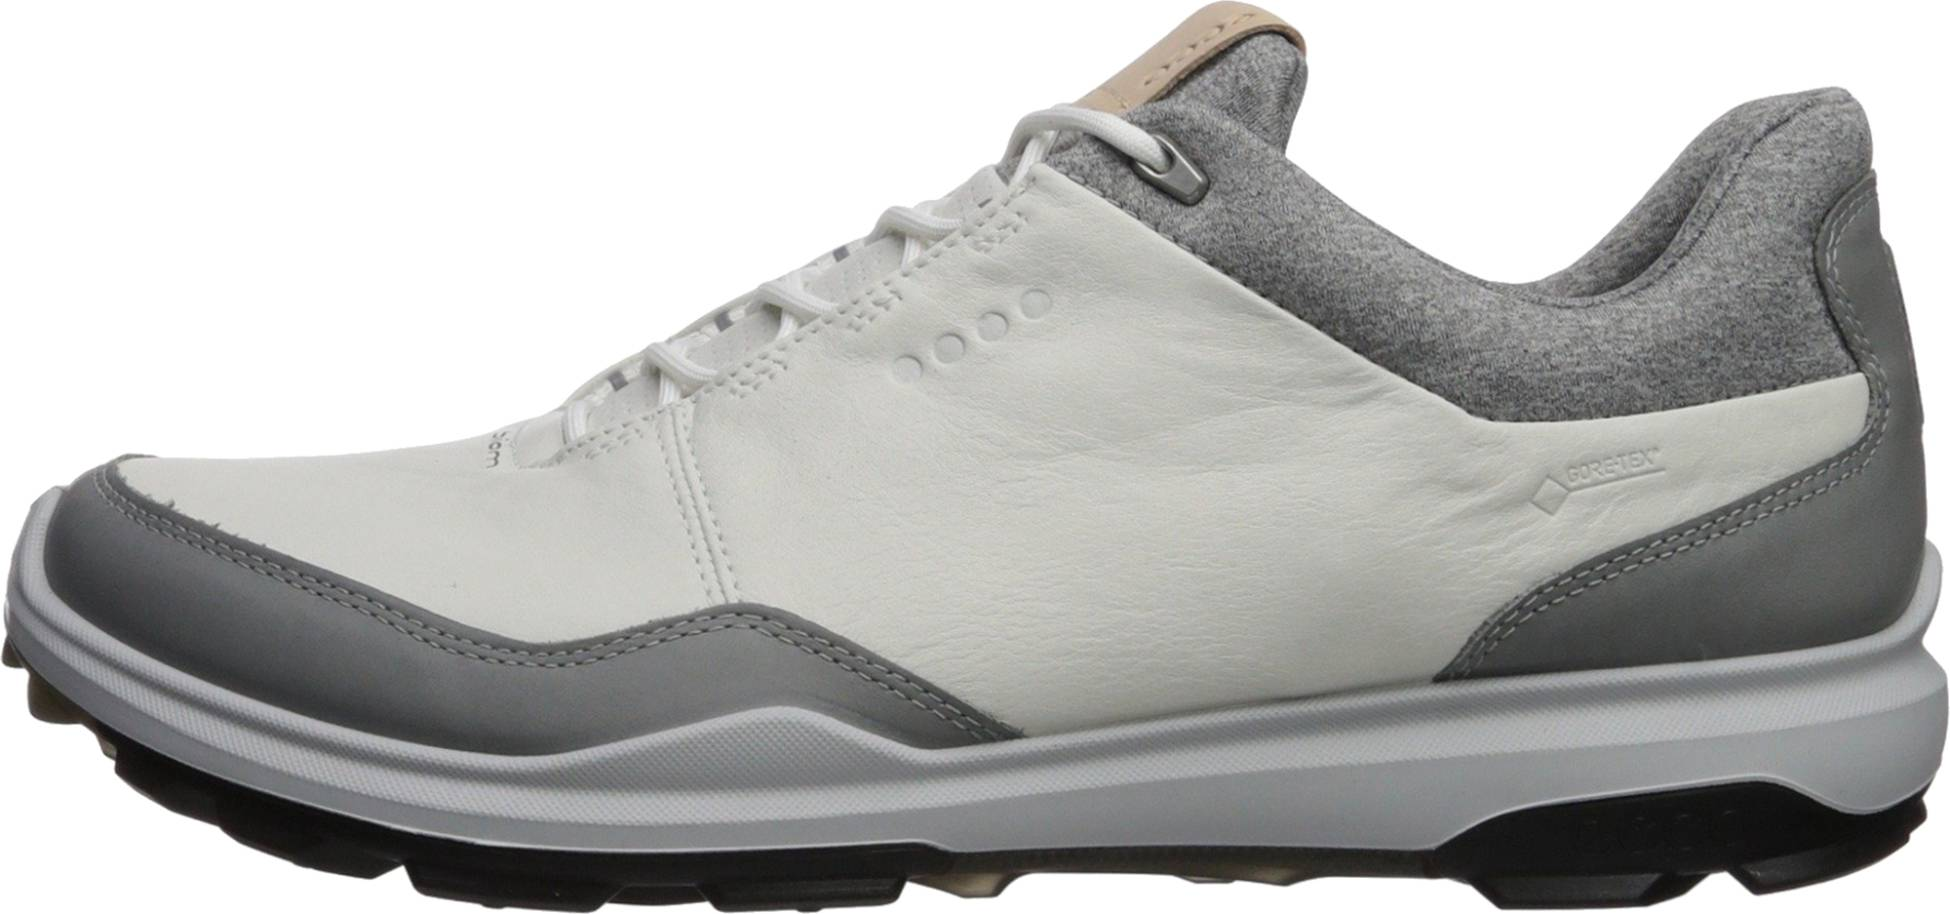 Save 28% on Gore-Tex Golf Shoes (6